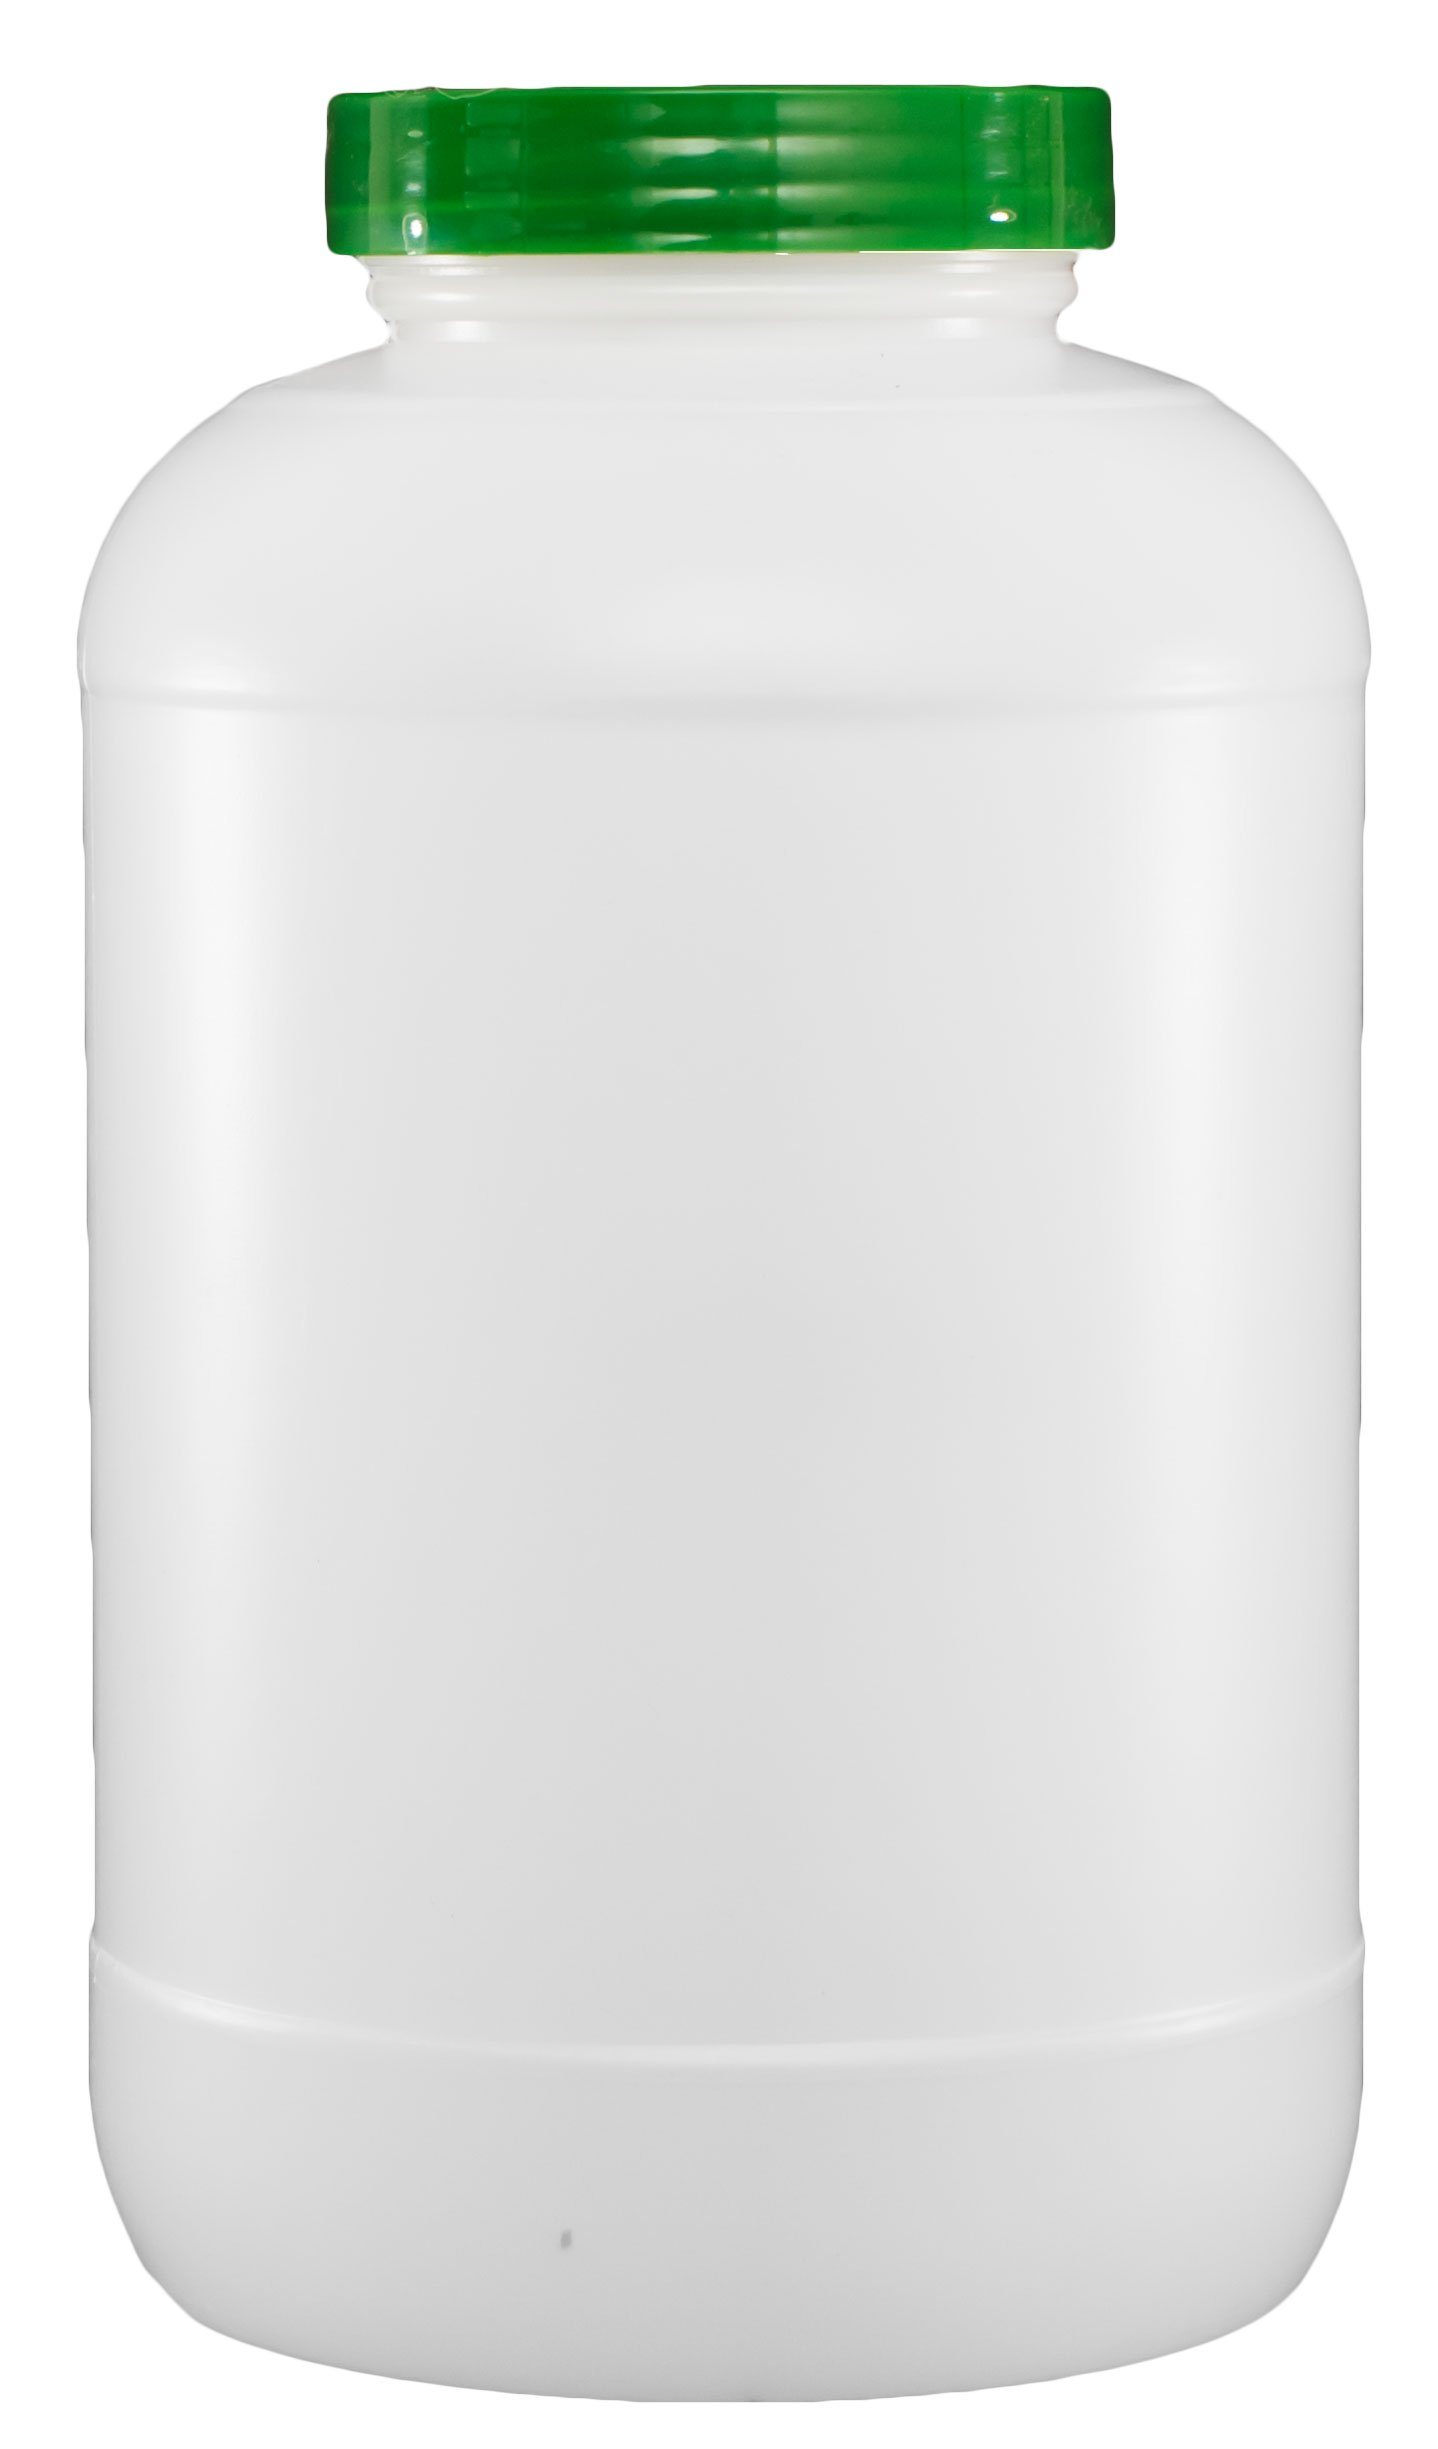 Mr. Tonic - 1 gal. Plastic Bar Storage Container w/Green Lid